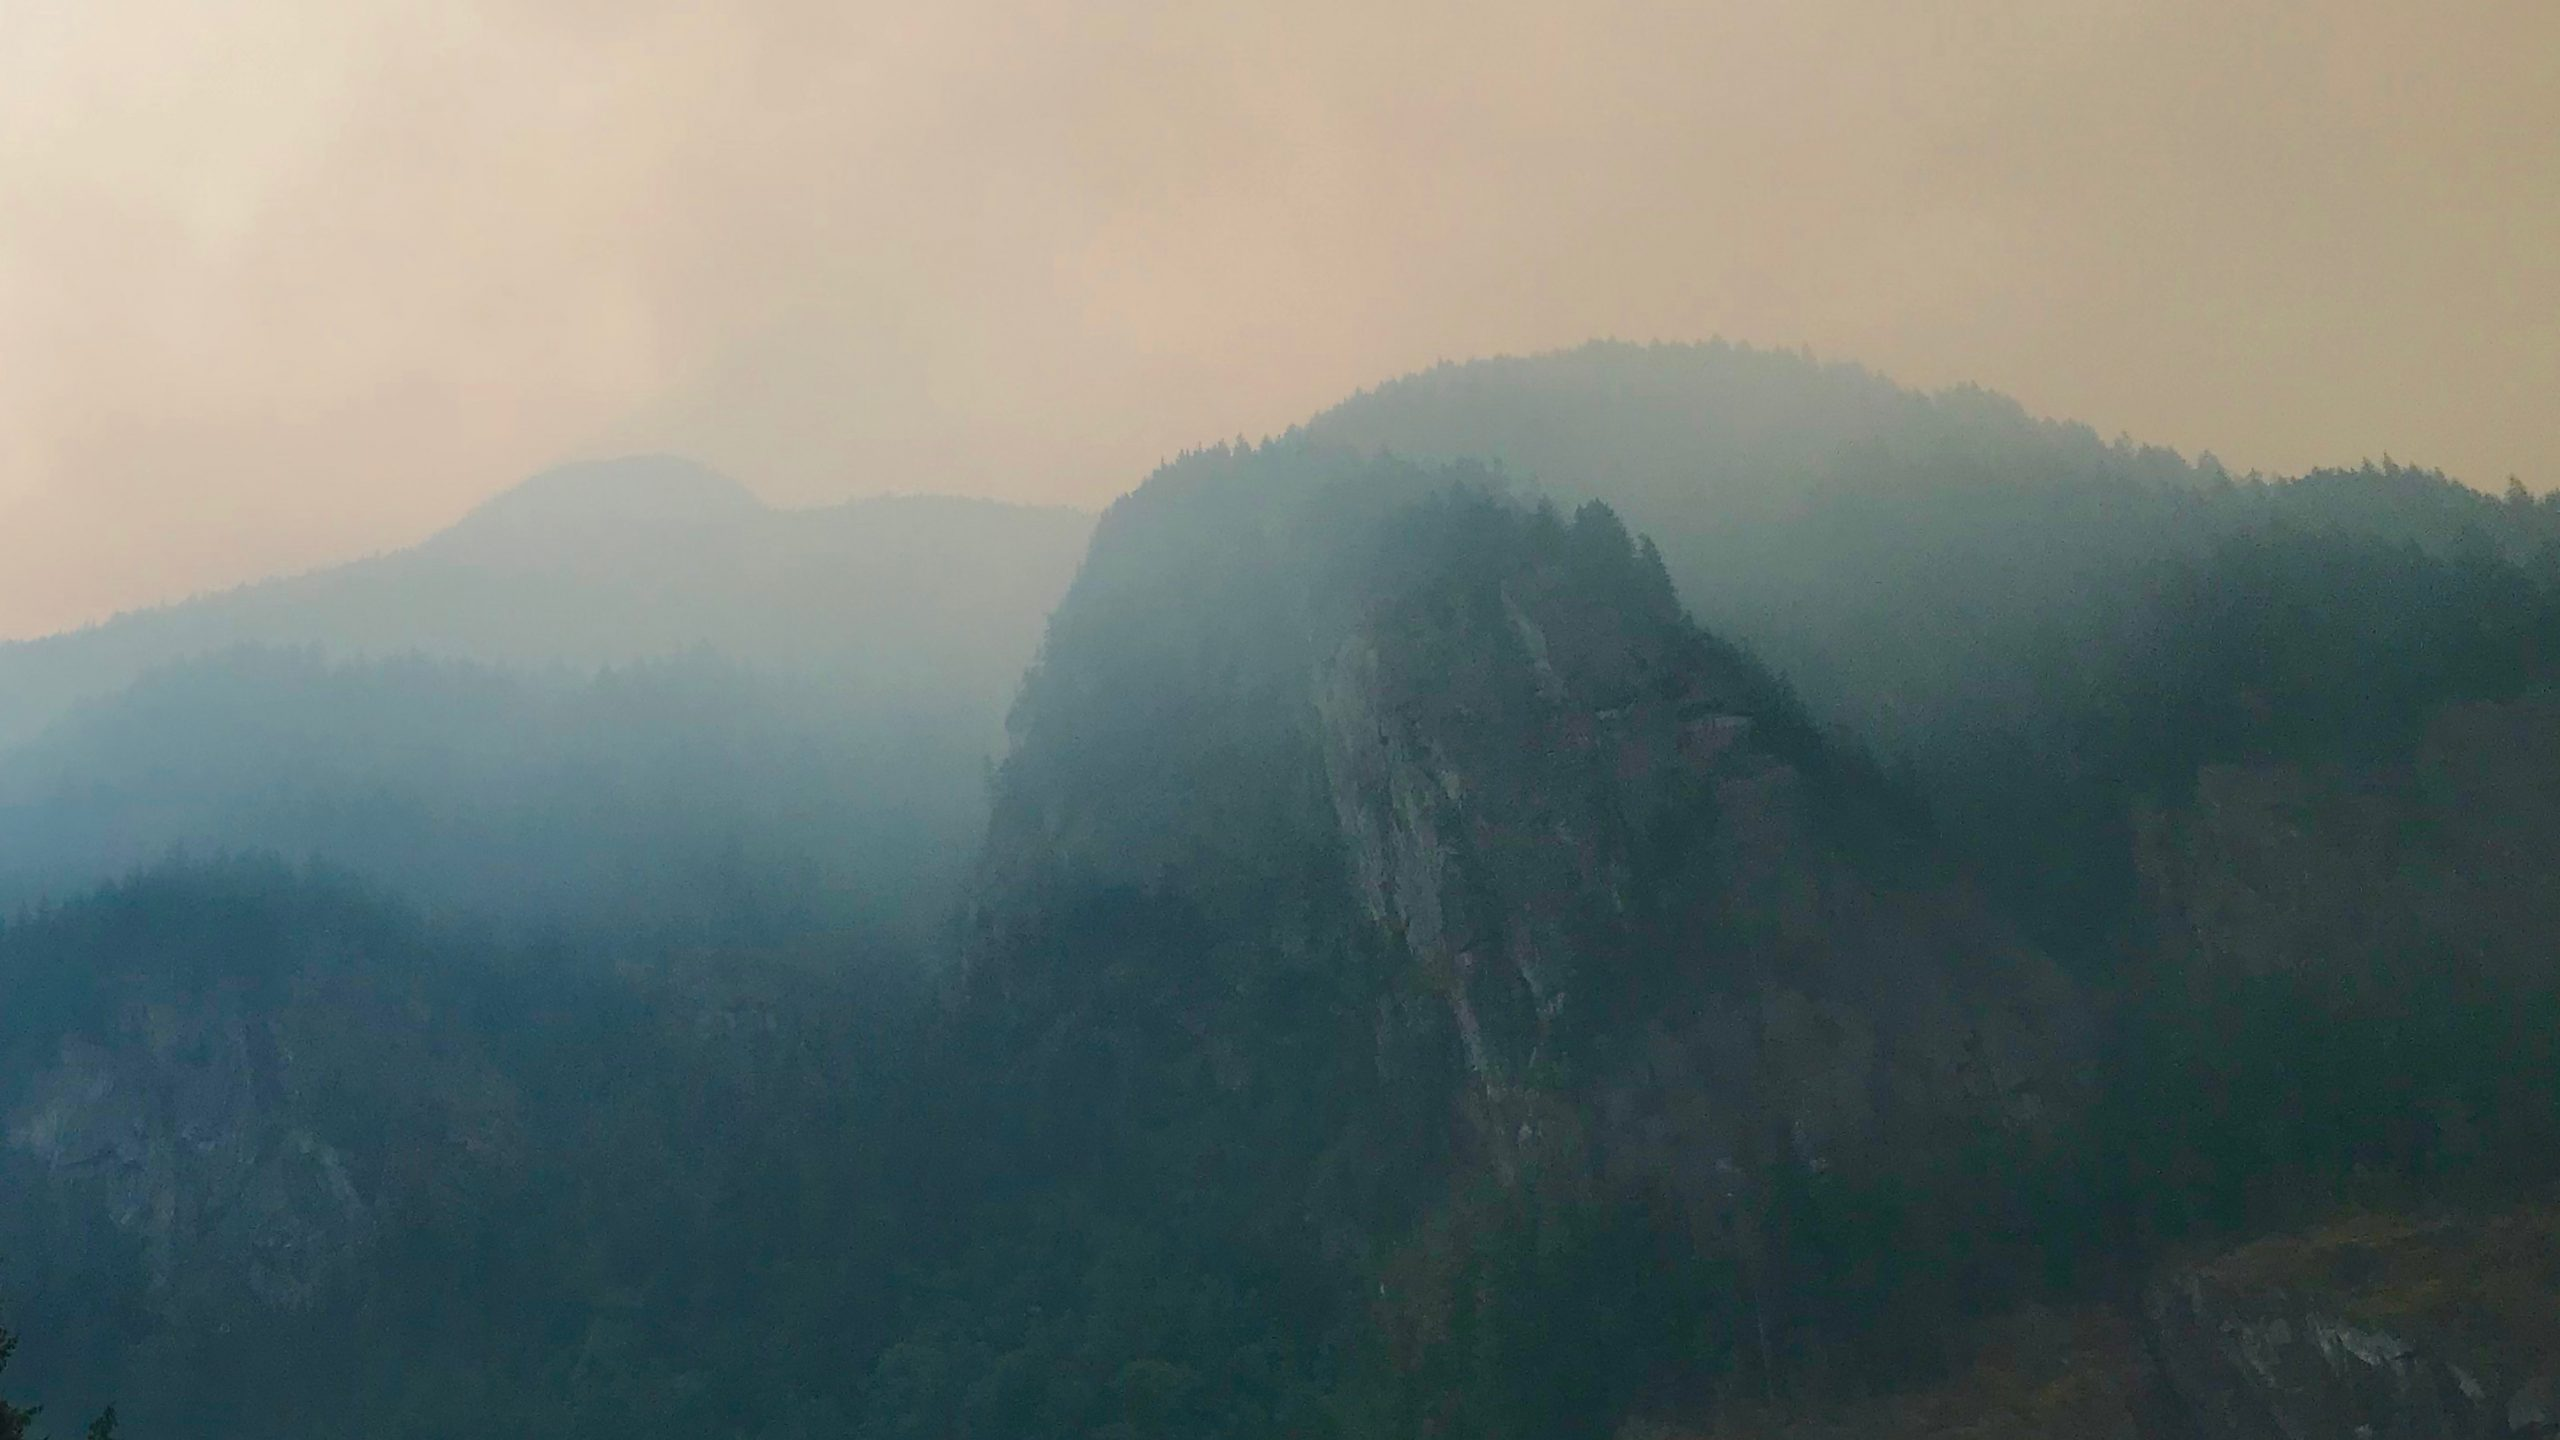 Smoke hangs over the cliffs of the Coqihalla River Canyon in Hope, British Columbia